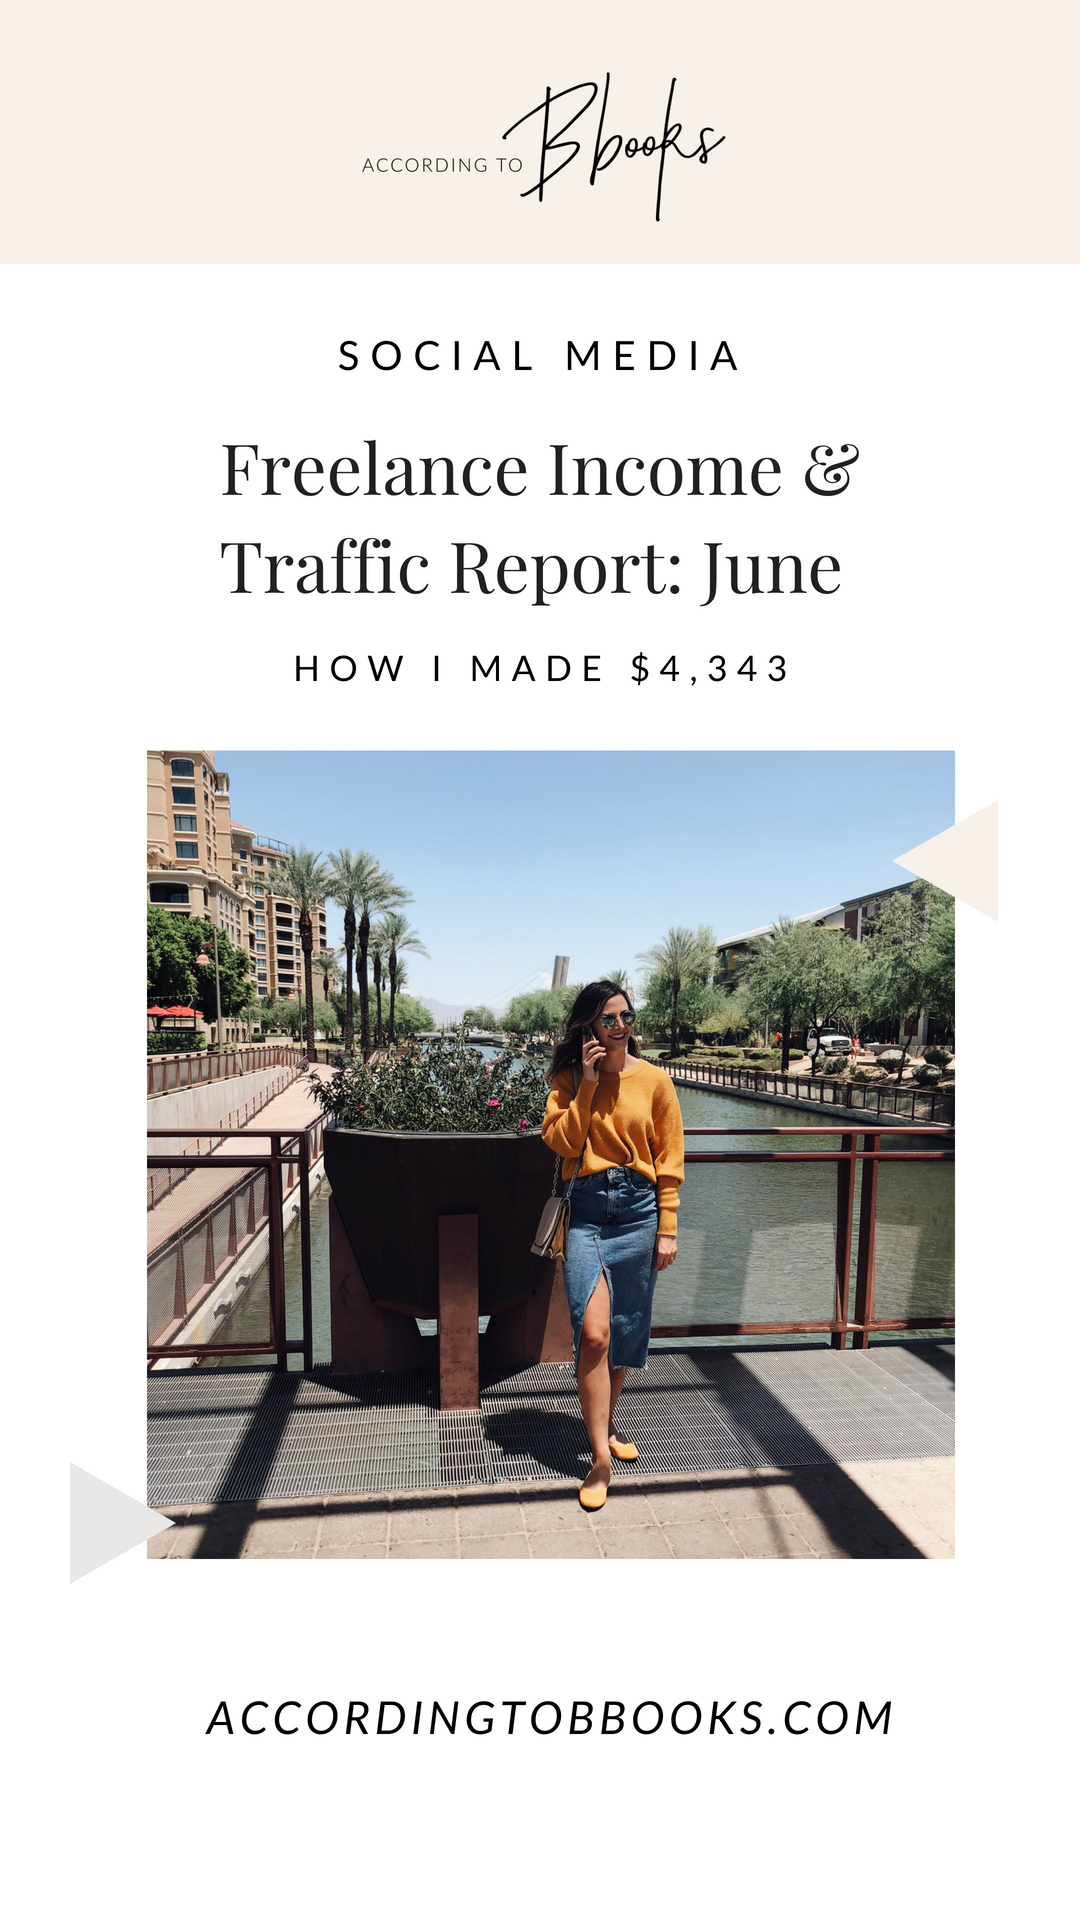 I new there were going to be changes in my freelance income coming in June with a bigger client pausing my services due to manufacturing issues. I decided to take a look at the situation from a positive stand point. I had been saying for MONTHS that I felt like I didn't have enough time to actually work ON my business so I used June as an opportunity to make some serious progress.